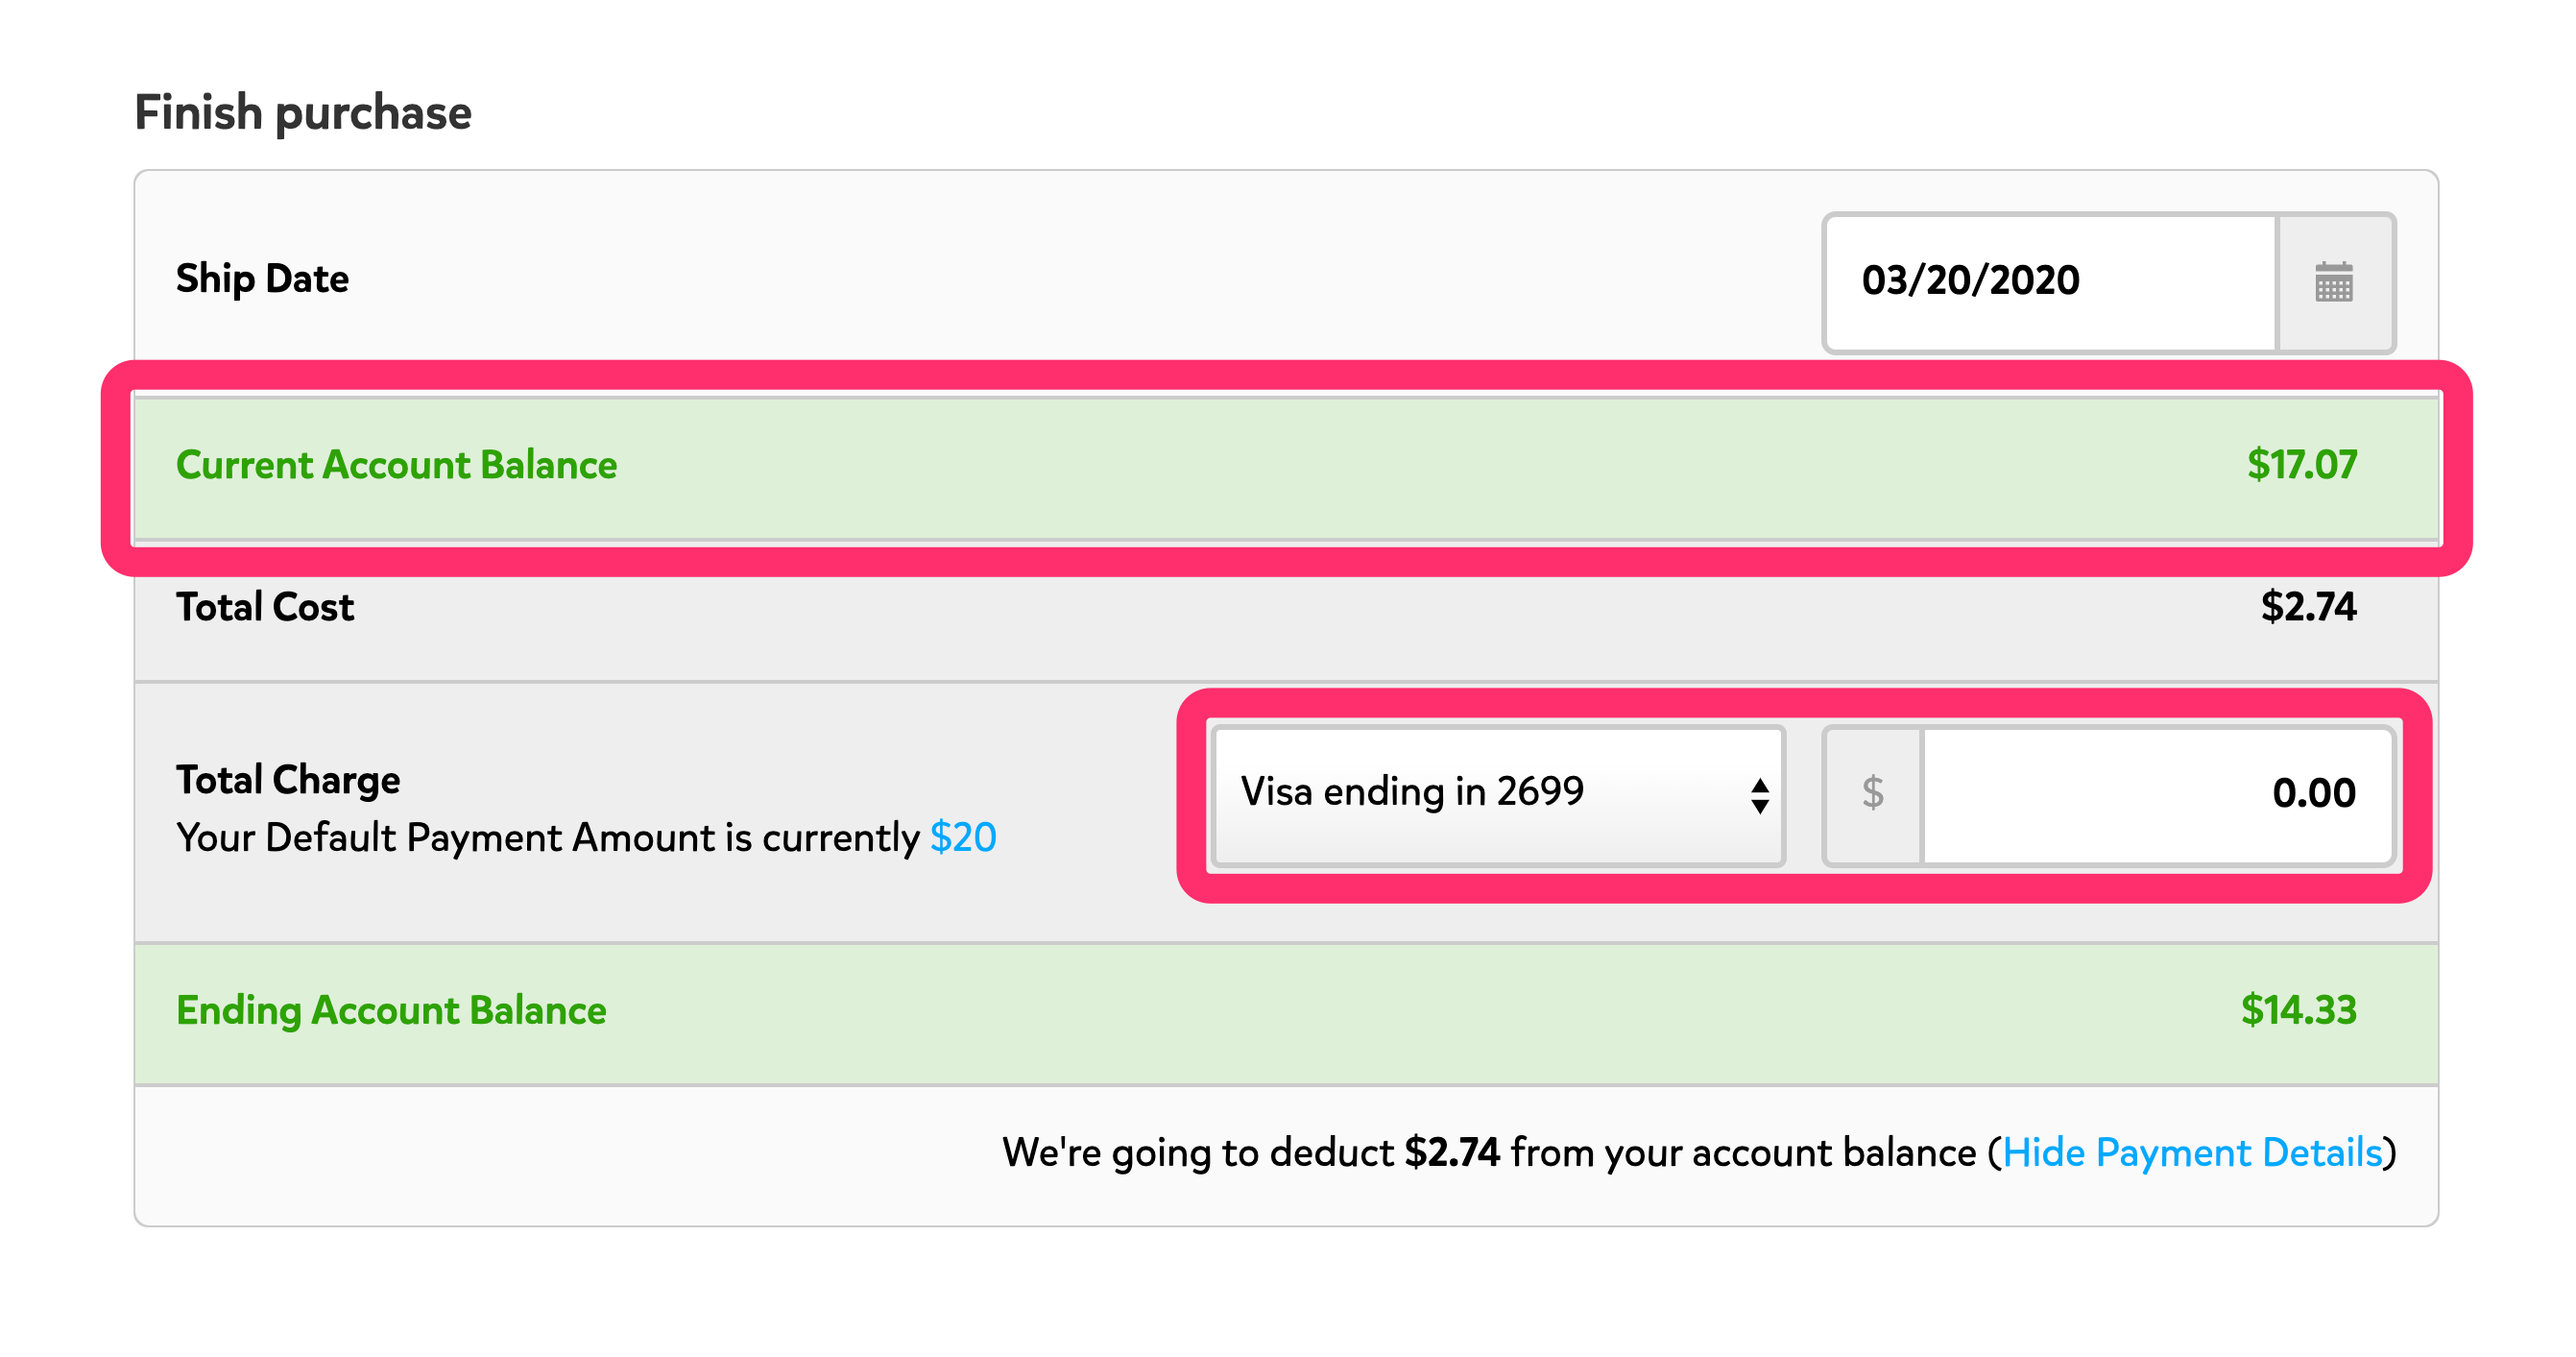 A screenshot of the 'Finish purchase' section. The line for 'Current Account Balance' is highlighted, and below that, the drop down menu showing the payment method, and the amount that will be charged to that payment method are shown. Since this screenshot shows an account balance that will cover the cost of the label, the total charge to the payment method will be $0.00.